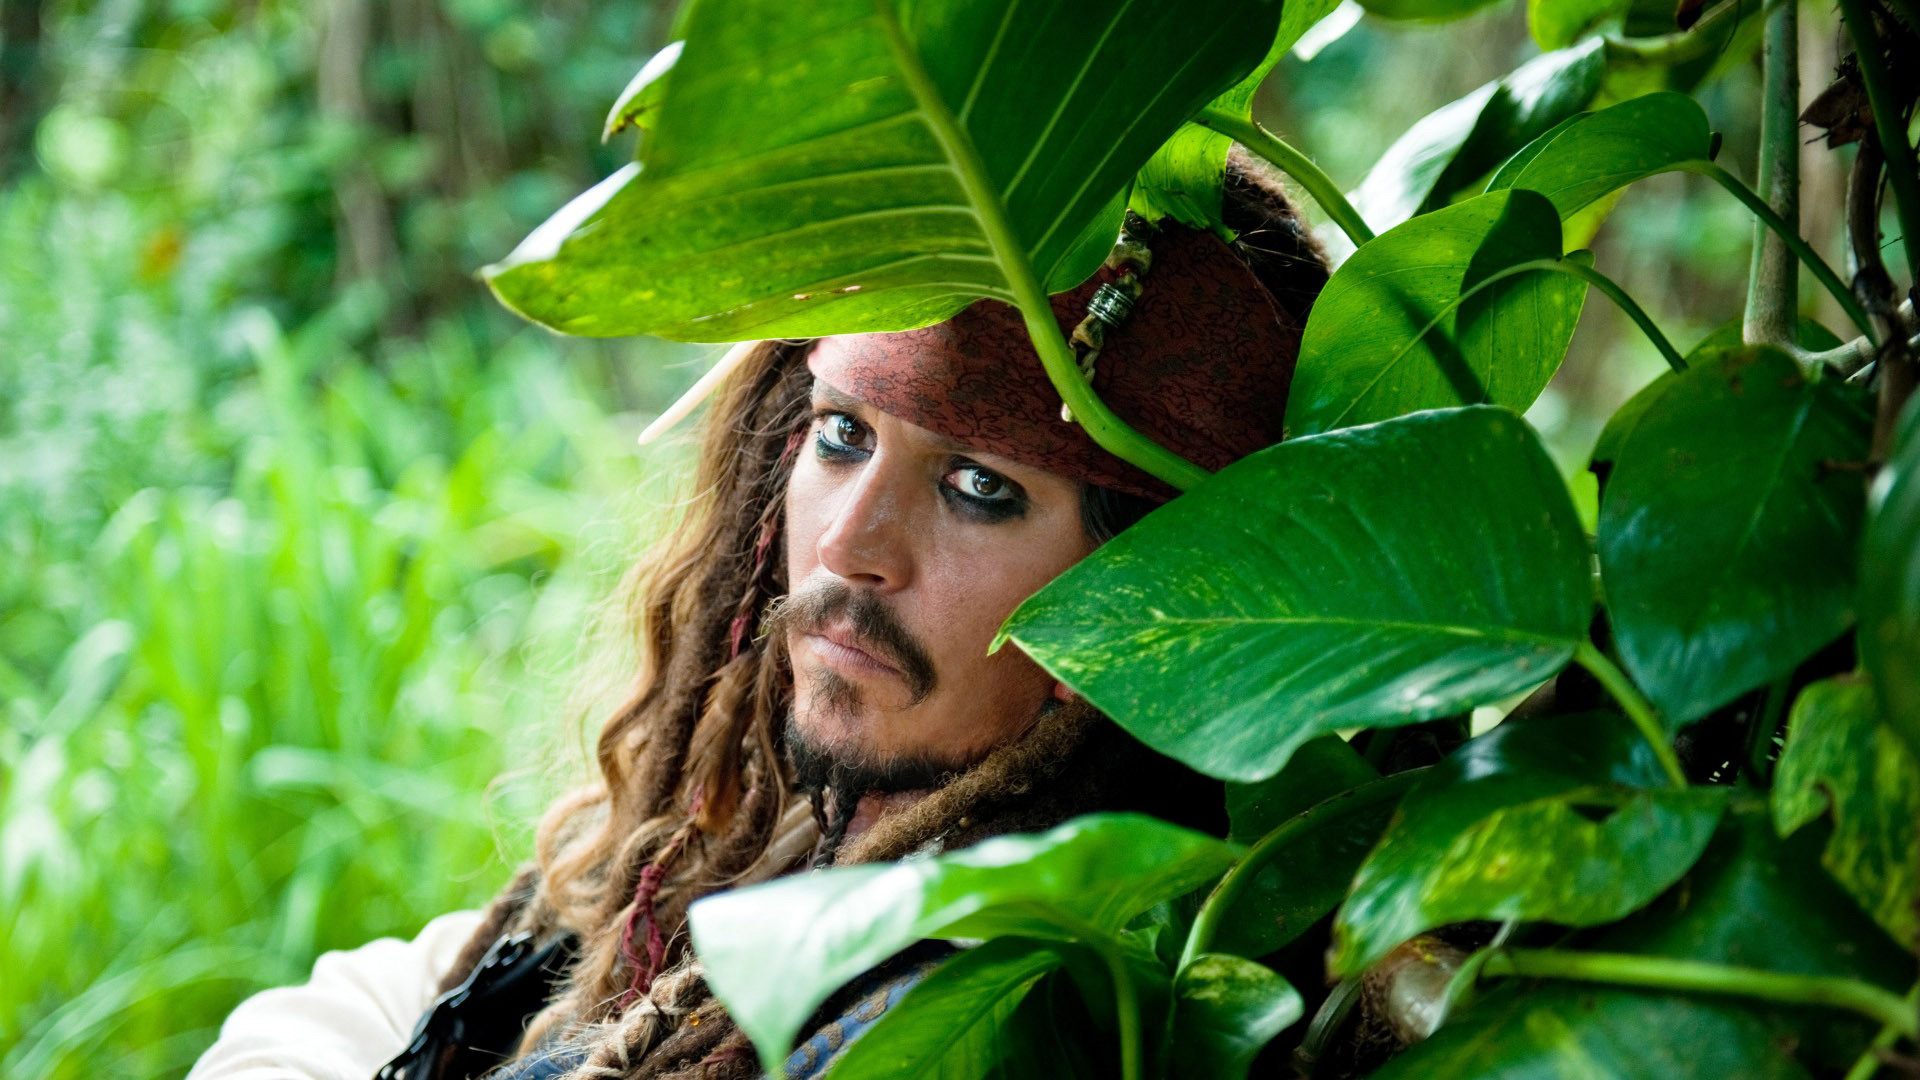 Captain jack sparrow wallpaper 1920x1080 jack sparrow pirates of the caribbean on stranger tides hd wallpaper 1920x1080 download captain jack sparrow altavistaventures Image collections